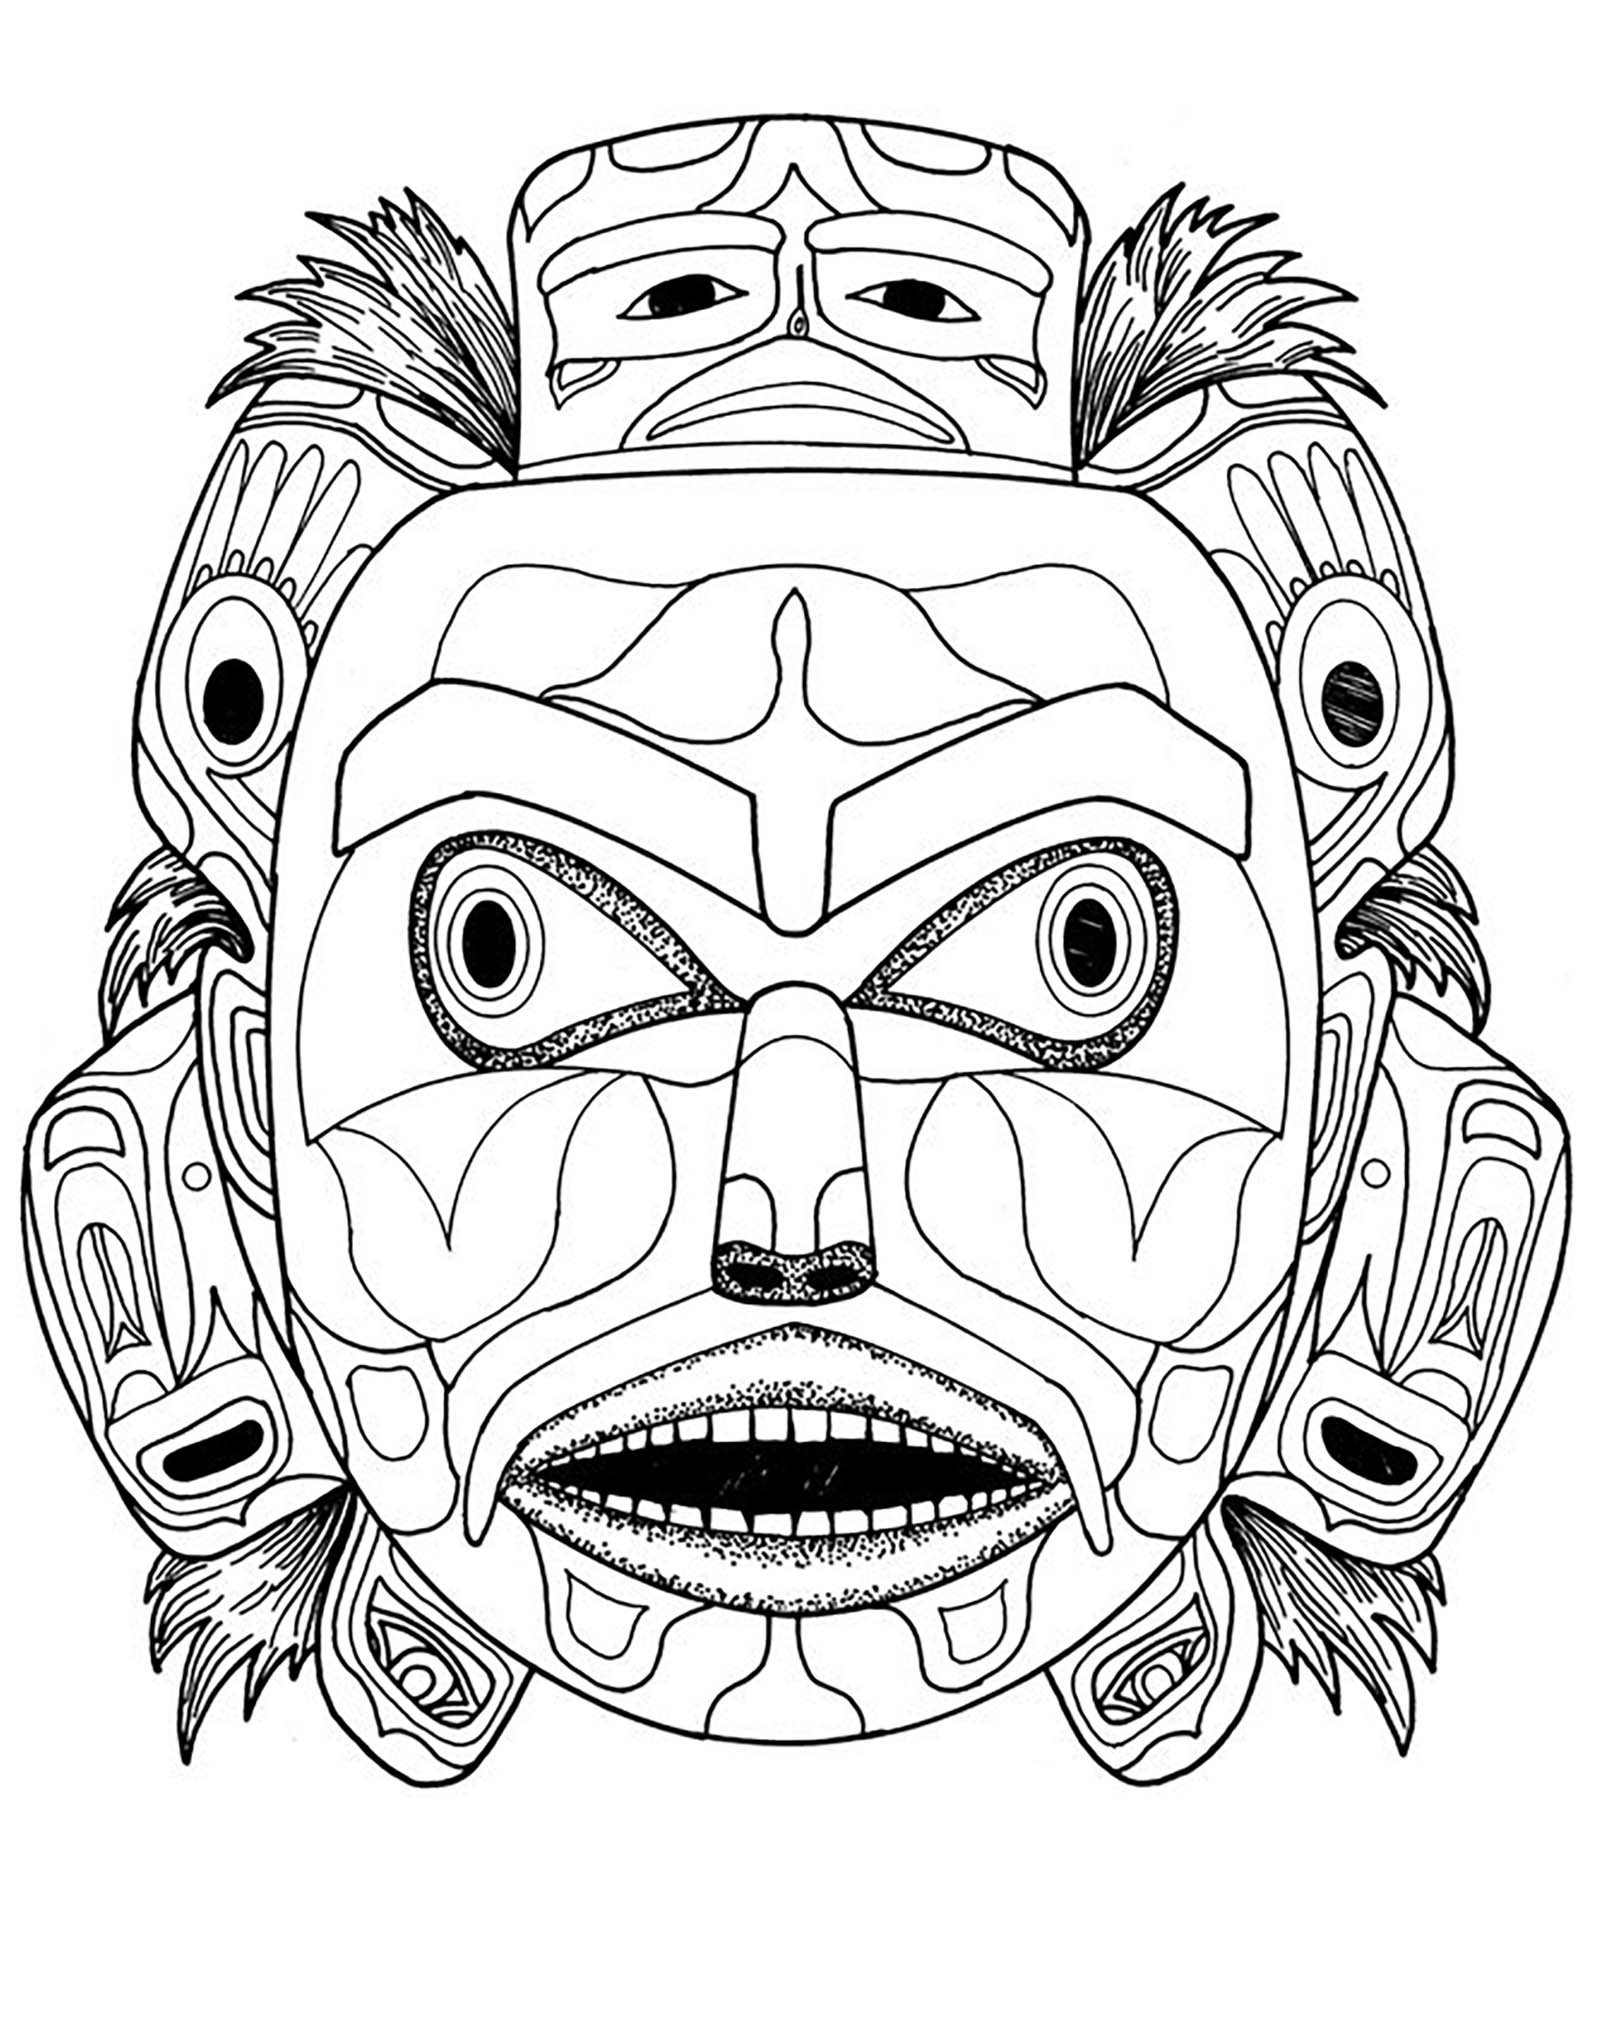 Indian Head Coloring Page At Getcolorings